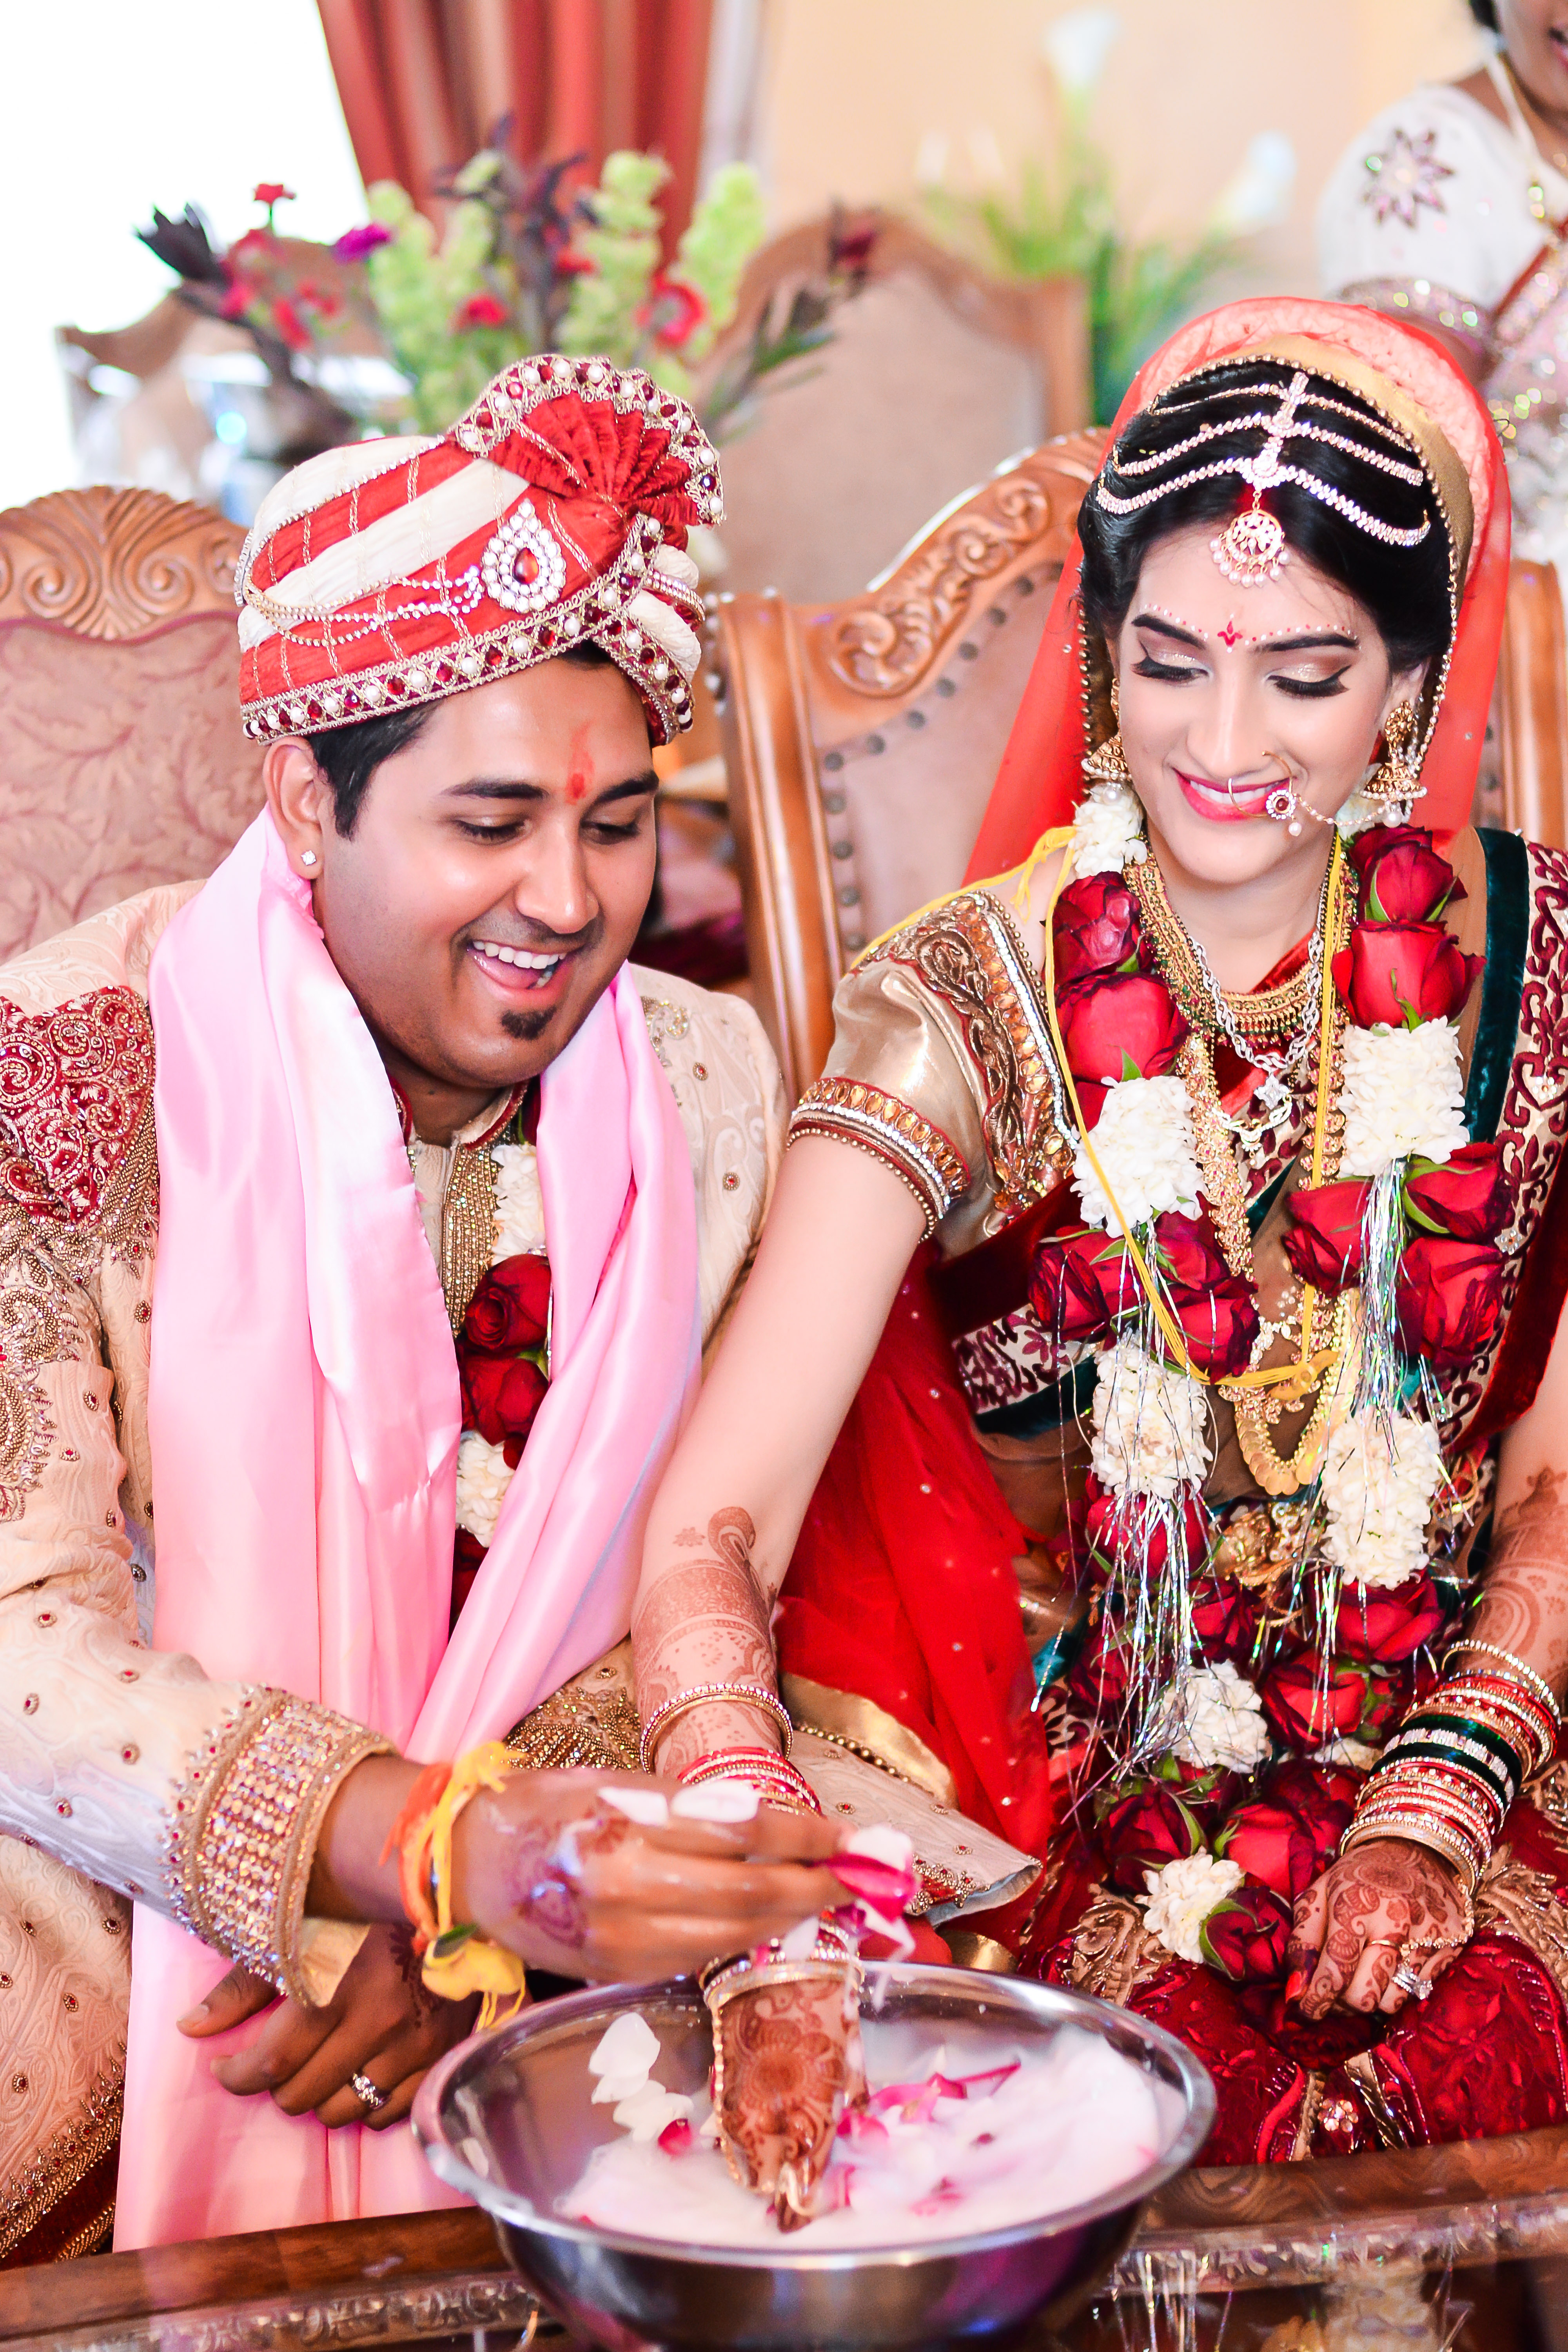 The Ring Game Who Will Win ShaadiShop Blog Hindu WeddingsIndian Wedding GamesRing